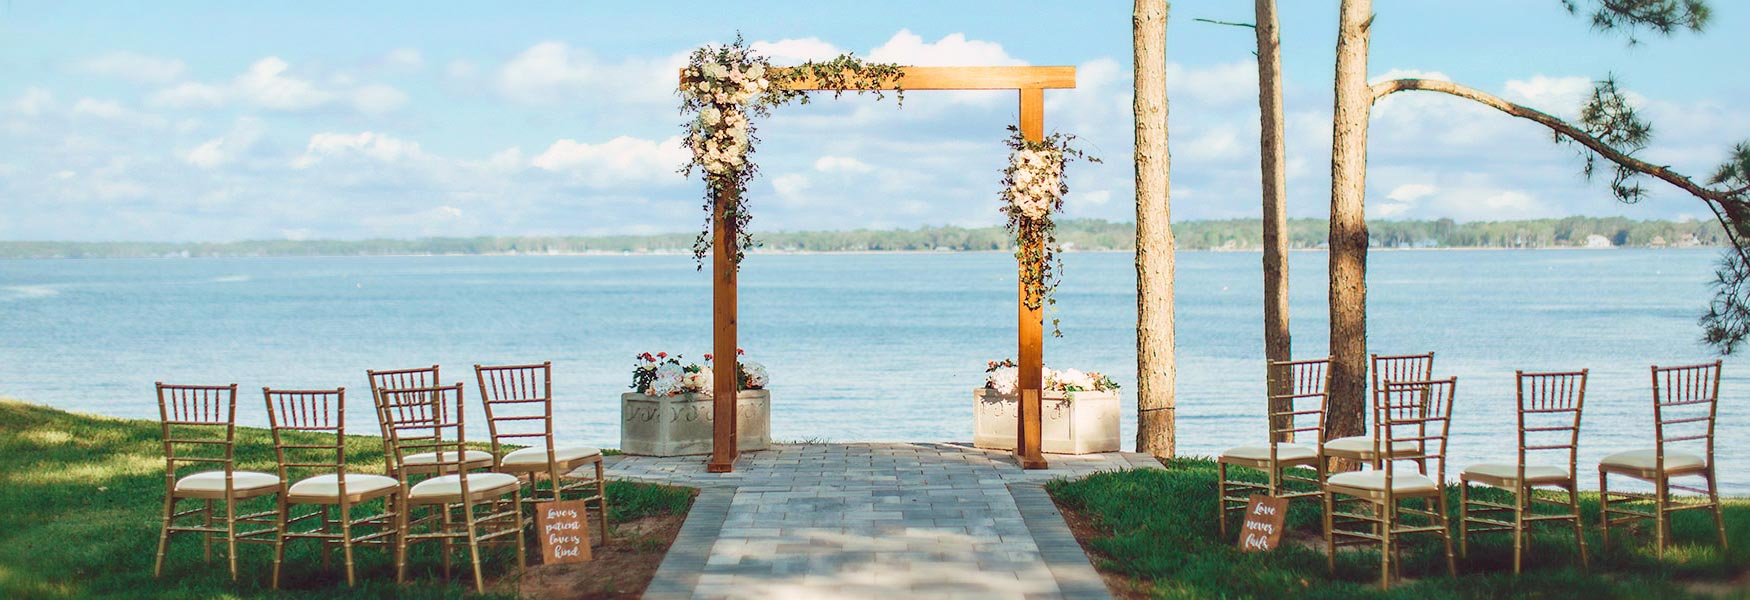 Waterfront wedding trellis